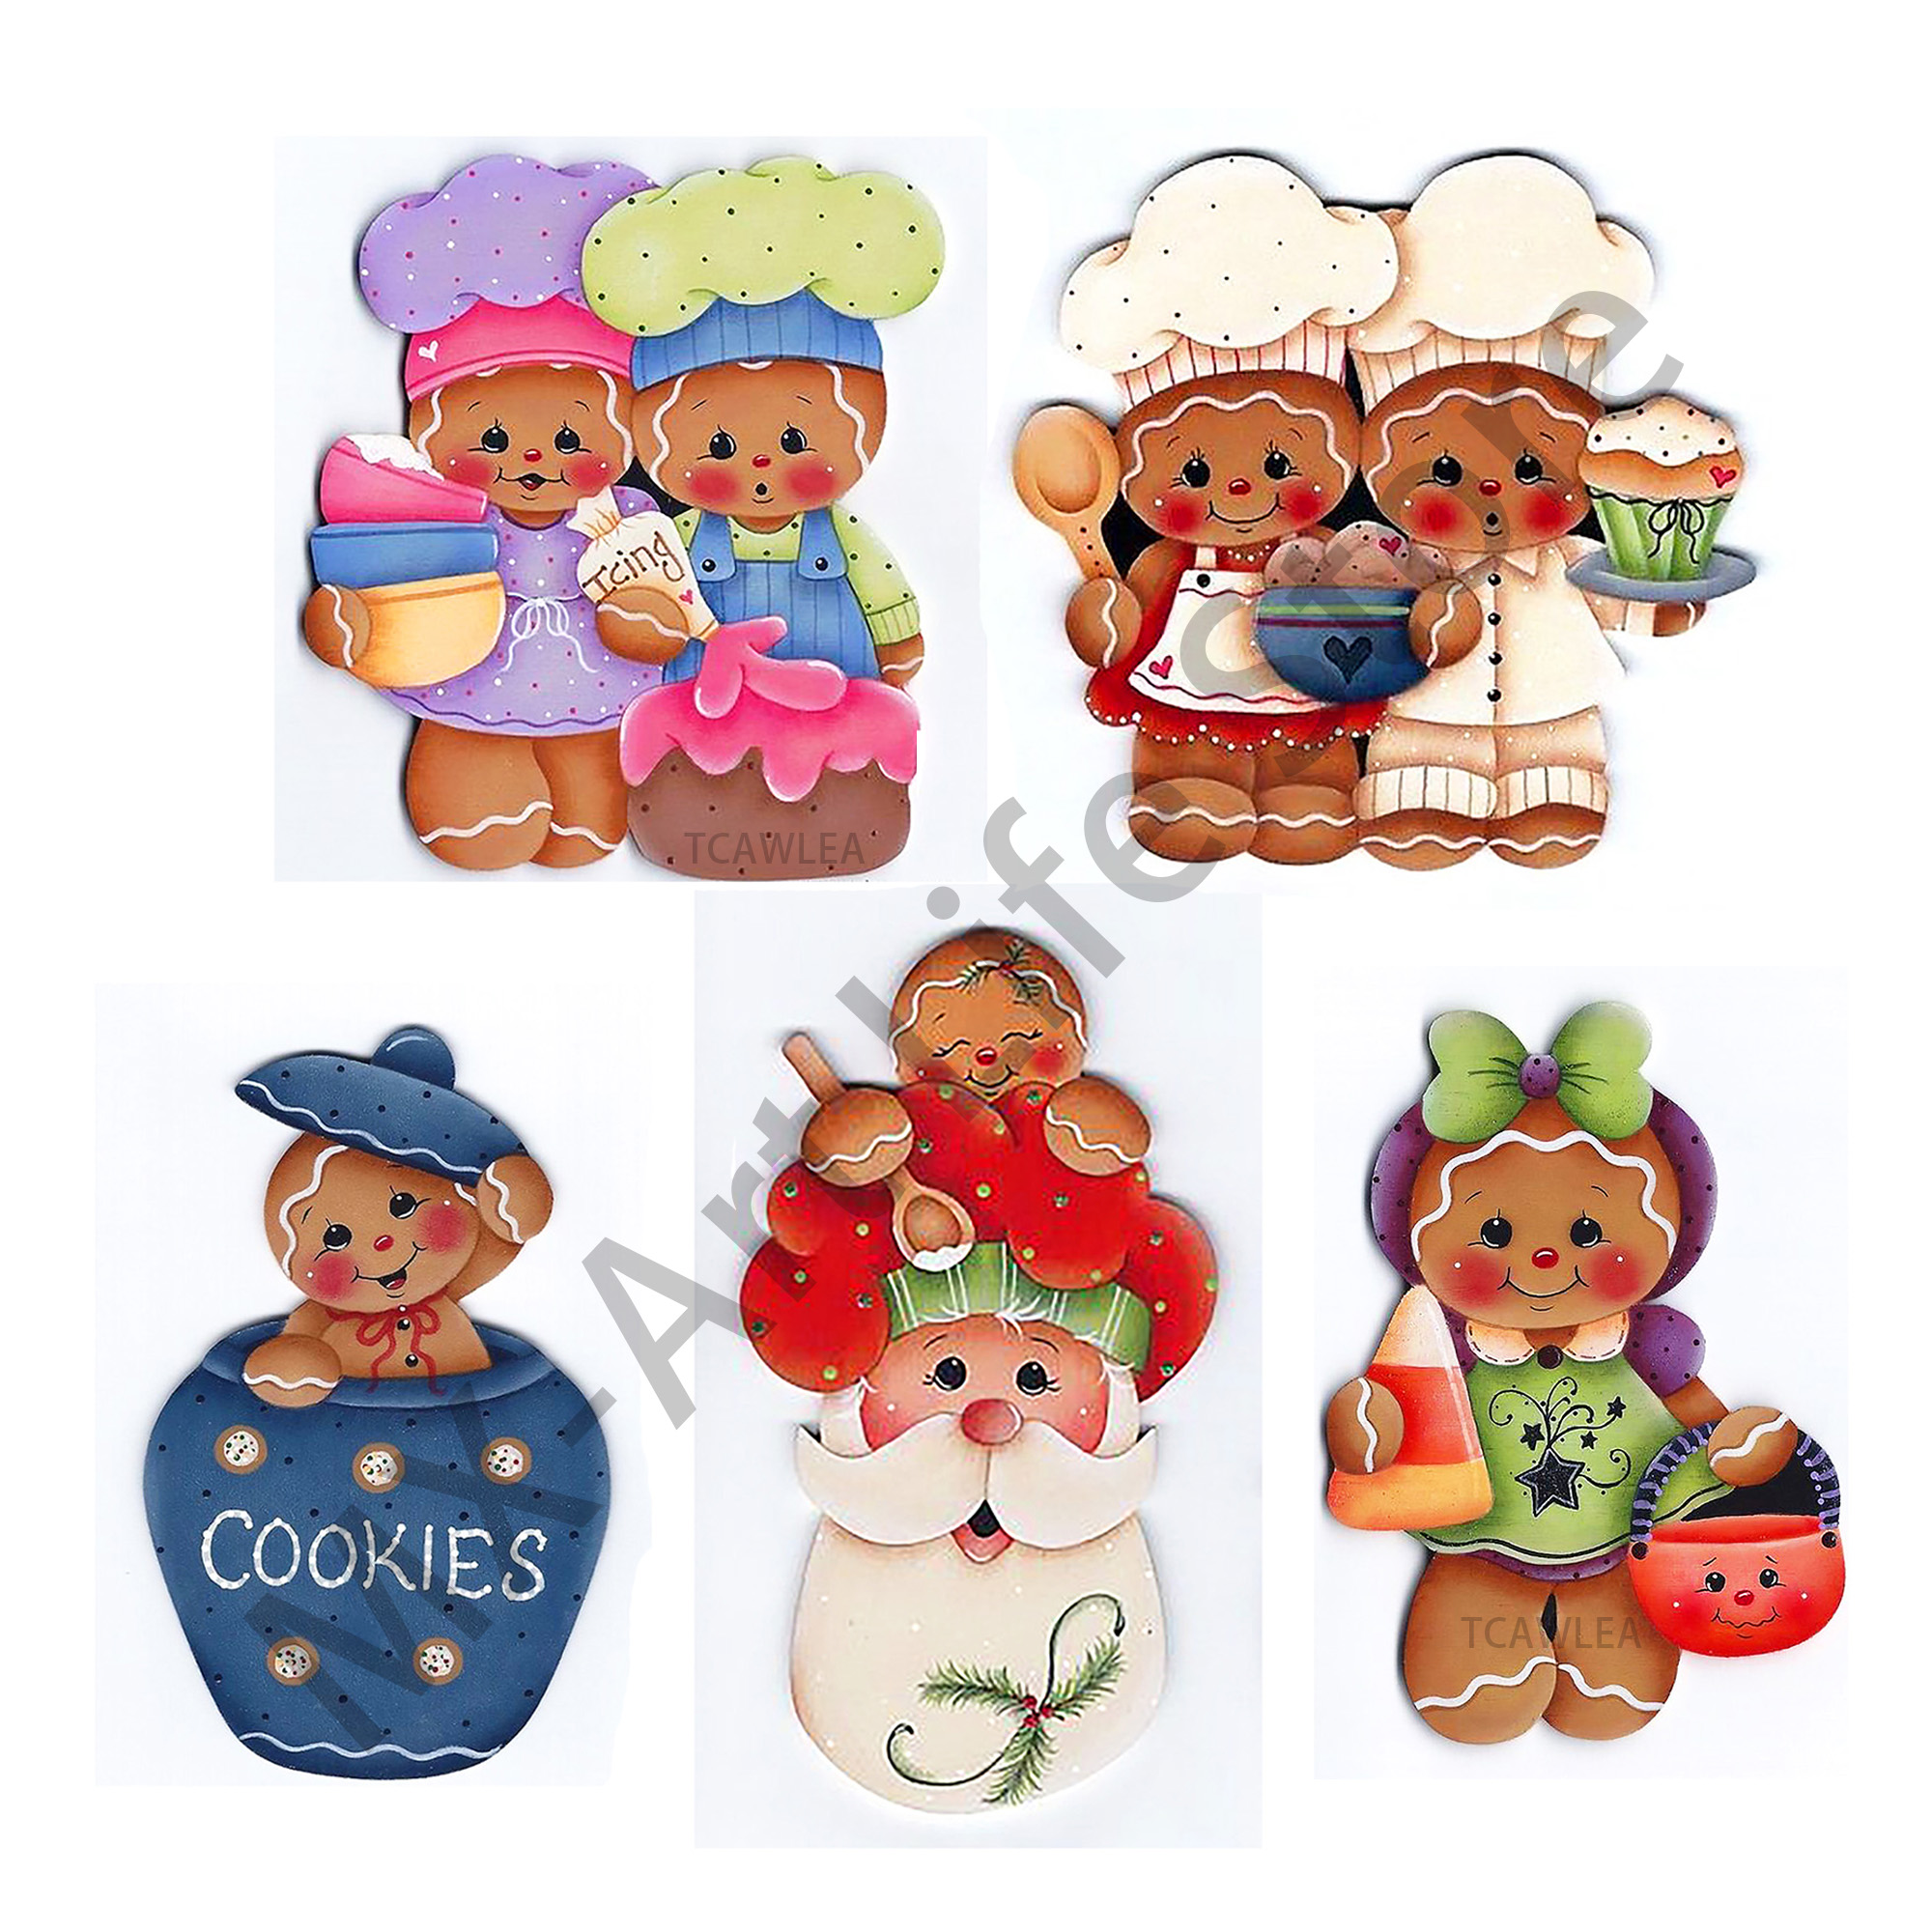 2020 Lovely Gingerbread Boy Girl Cutting Dies Christmas Gingerbread Man Baby Doll Stencil For DIY Scrapbooking Craft Cards